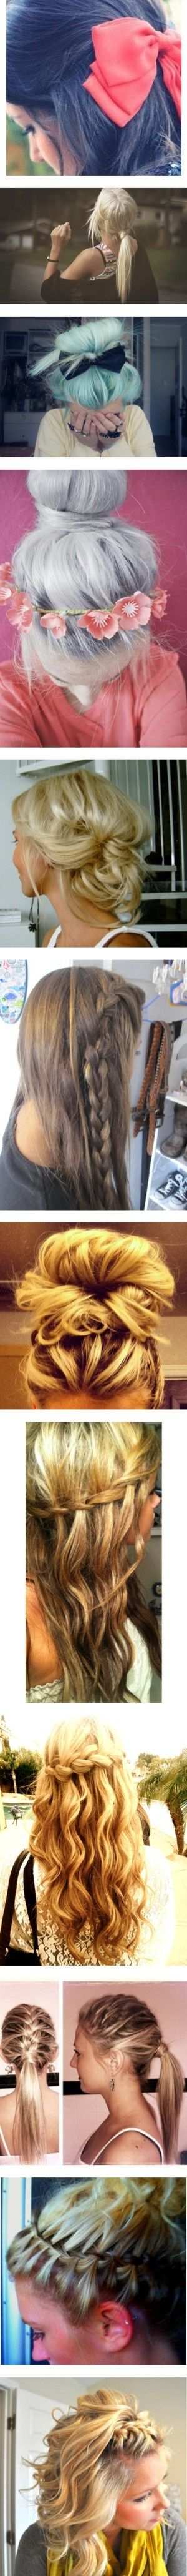 pretty / easy hairstyles @ The Beauty ThesisThe Beauty Thesis